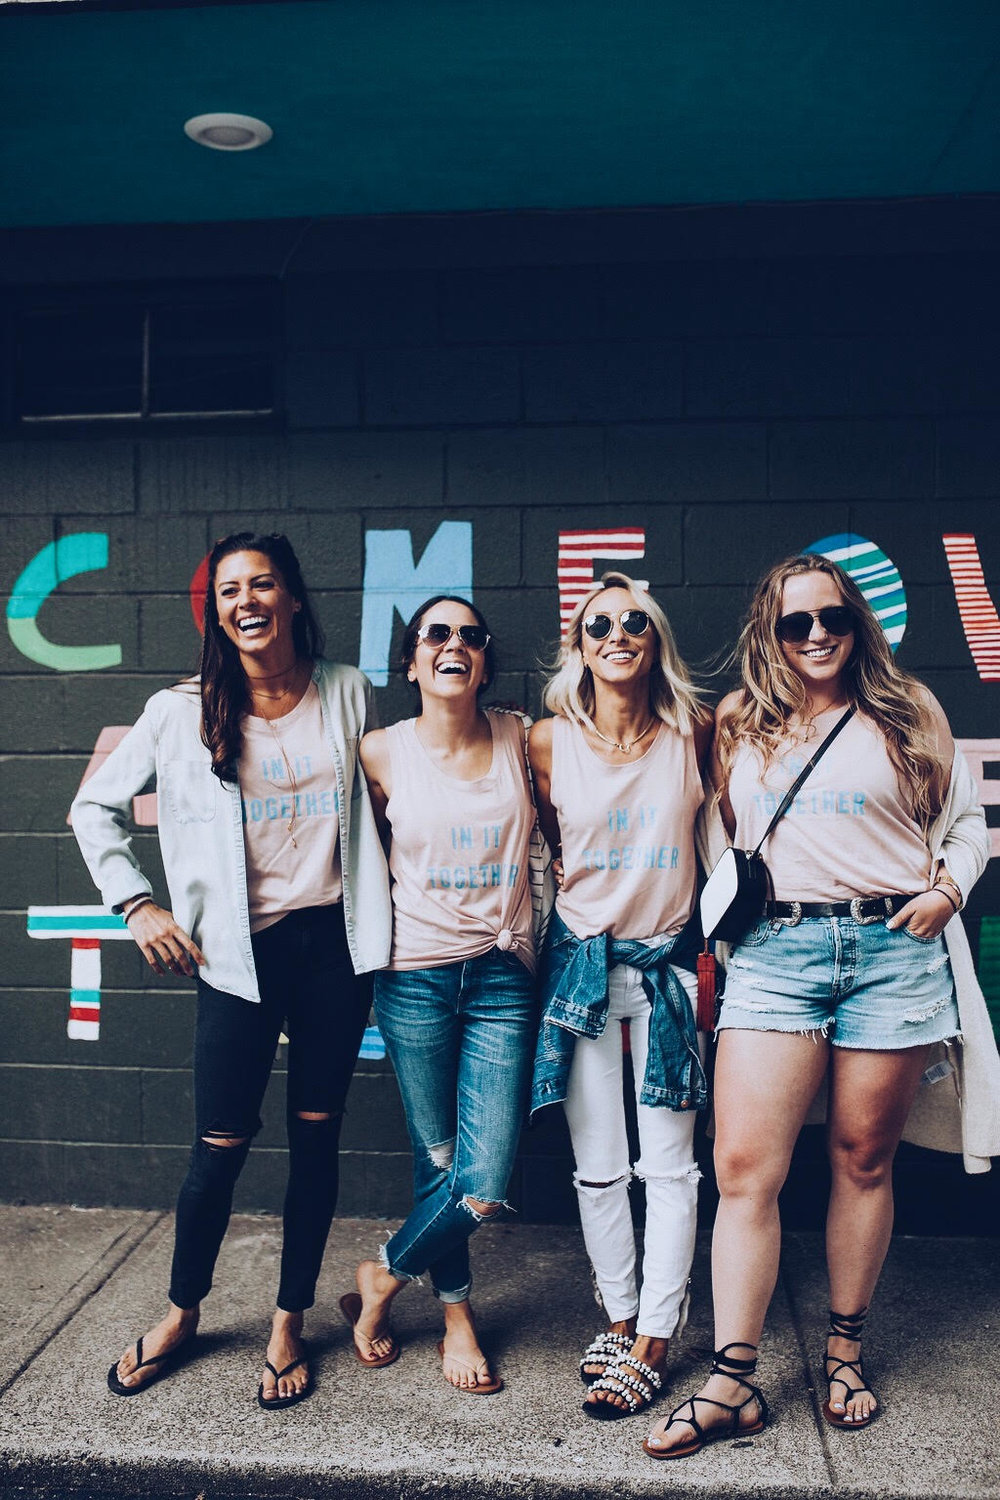 Photo: Julianna Arendash Photography- Location: Masons Creamery- Wall Art: Erin Guido  Models (left to right)- Ally Grubba, Brittany Whittman, Lauren Letizio, Alexandra Rose